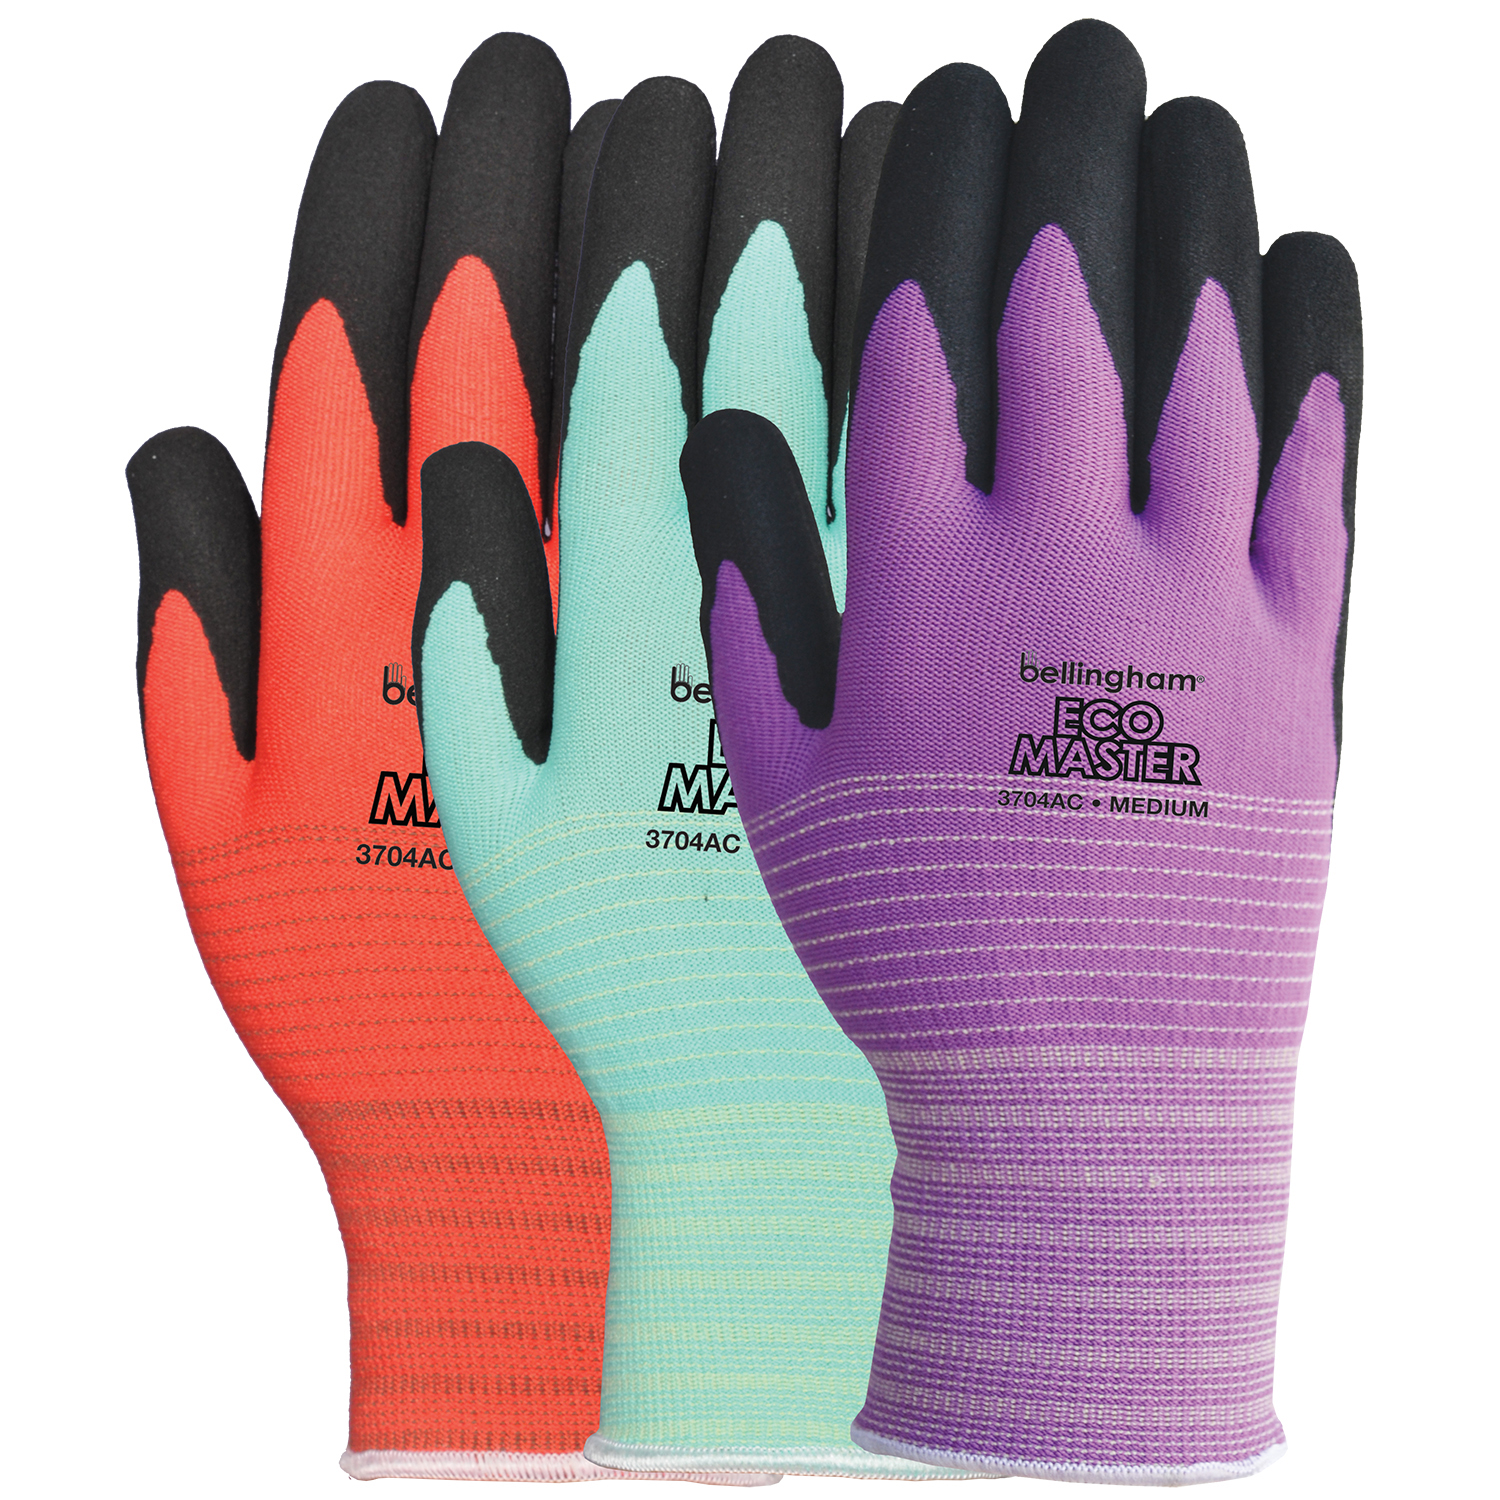 Bellingham Eco Master® Glove with Polymer PU Palm Glove - Assorted Colors